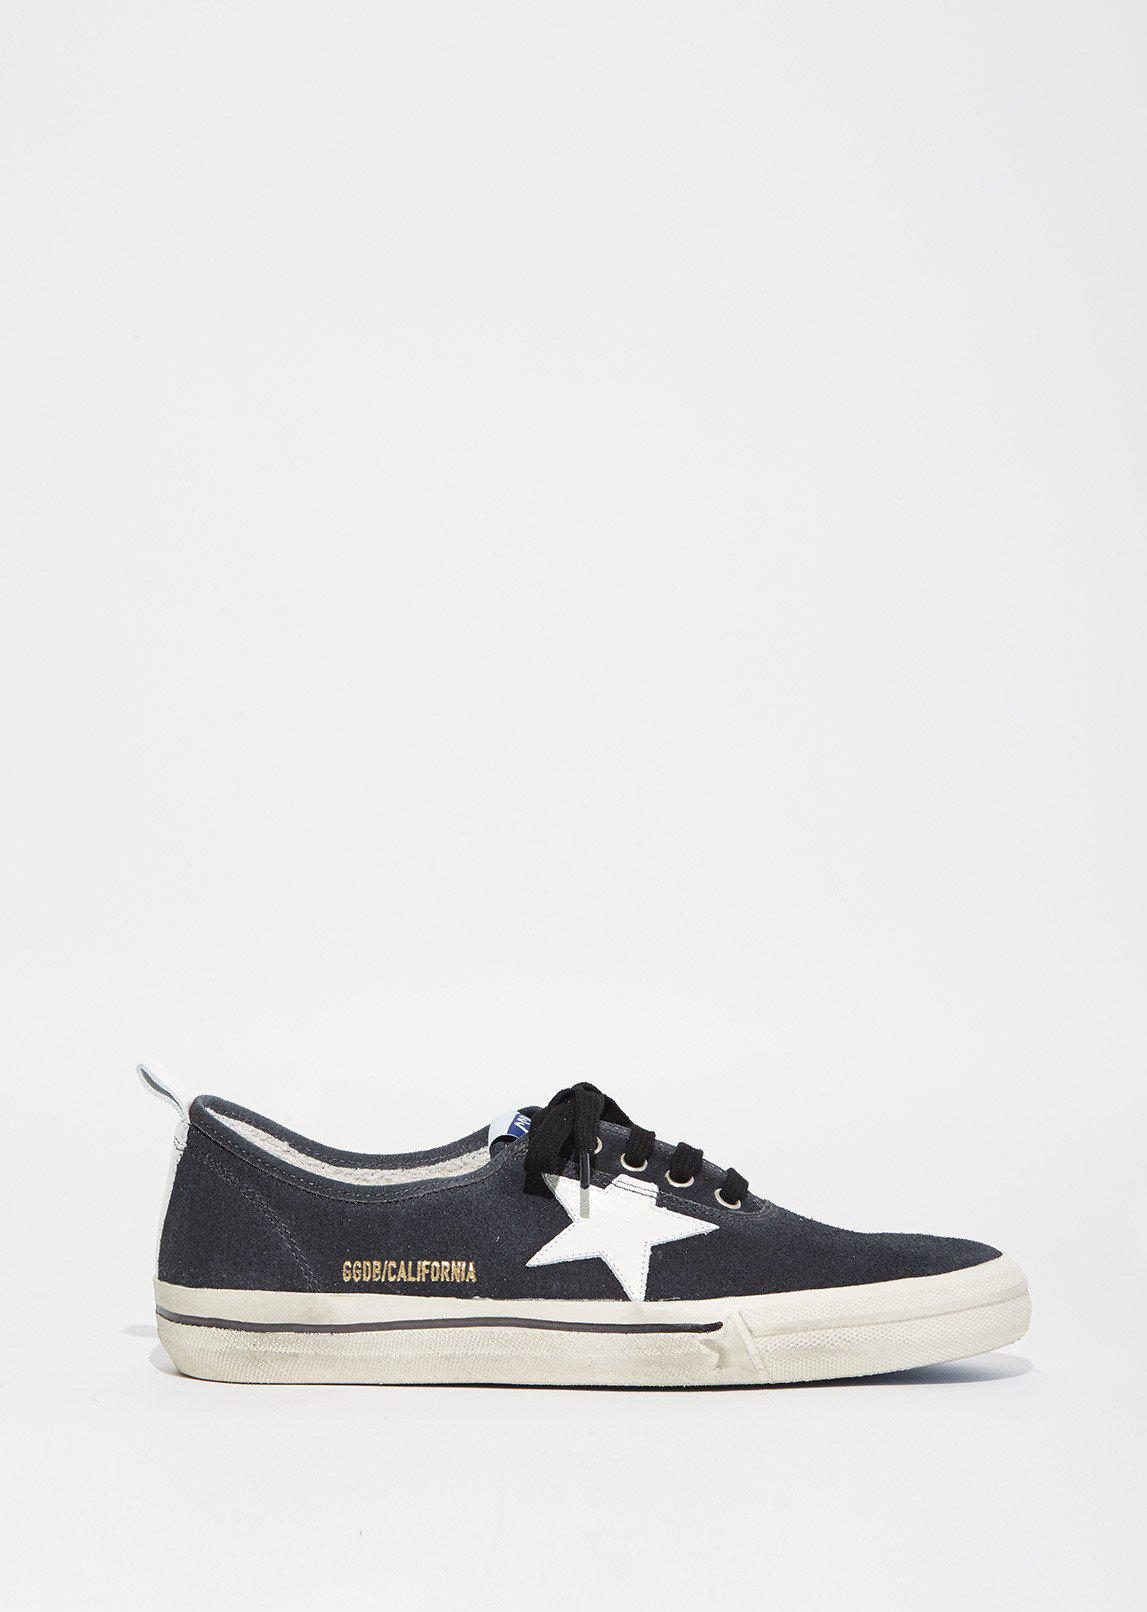 Free Shipping Popular Black Suede California Sneakers Golden Goose Perfect Cheap Online Pictures Sale Online BR7UFjZ